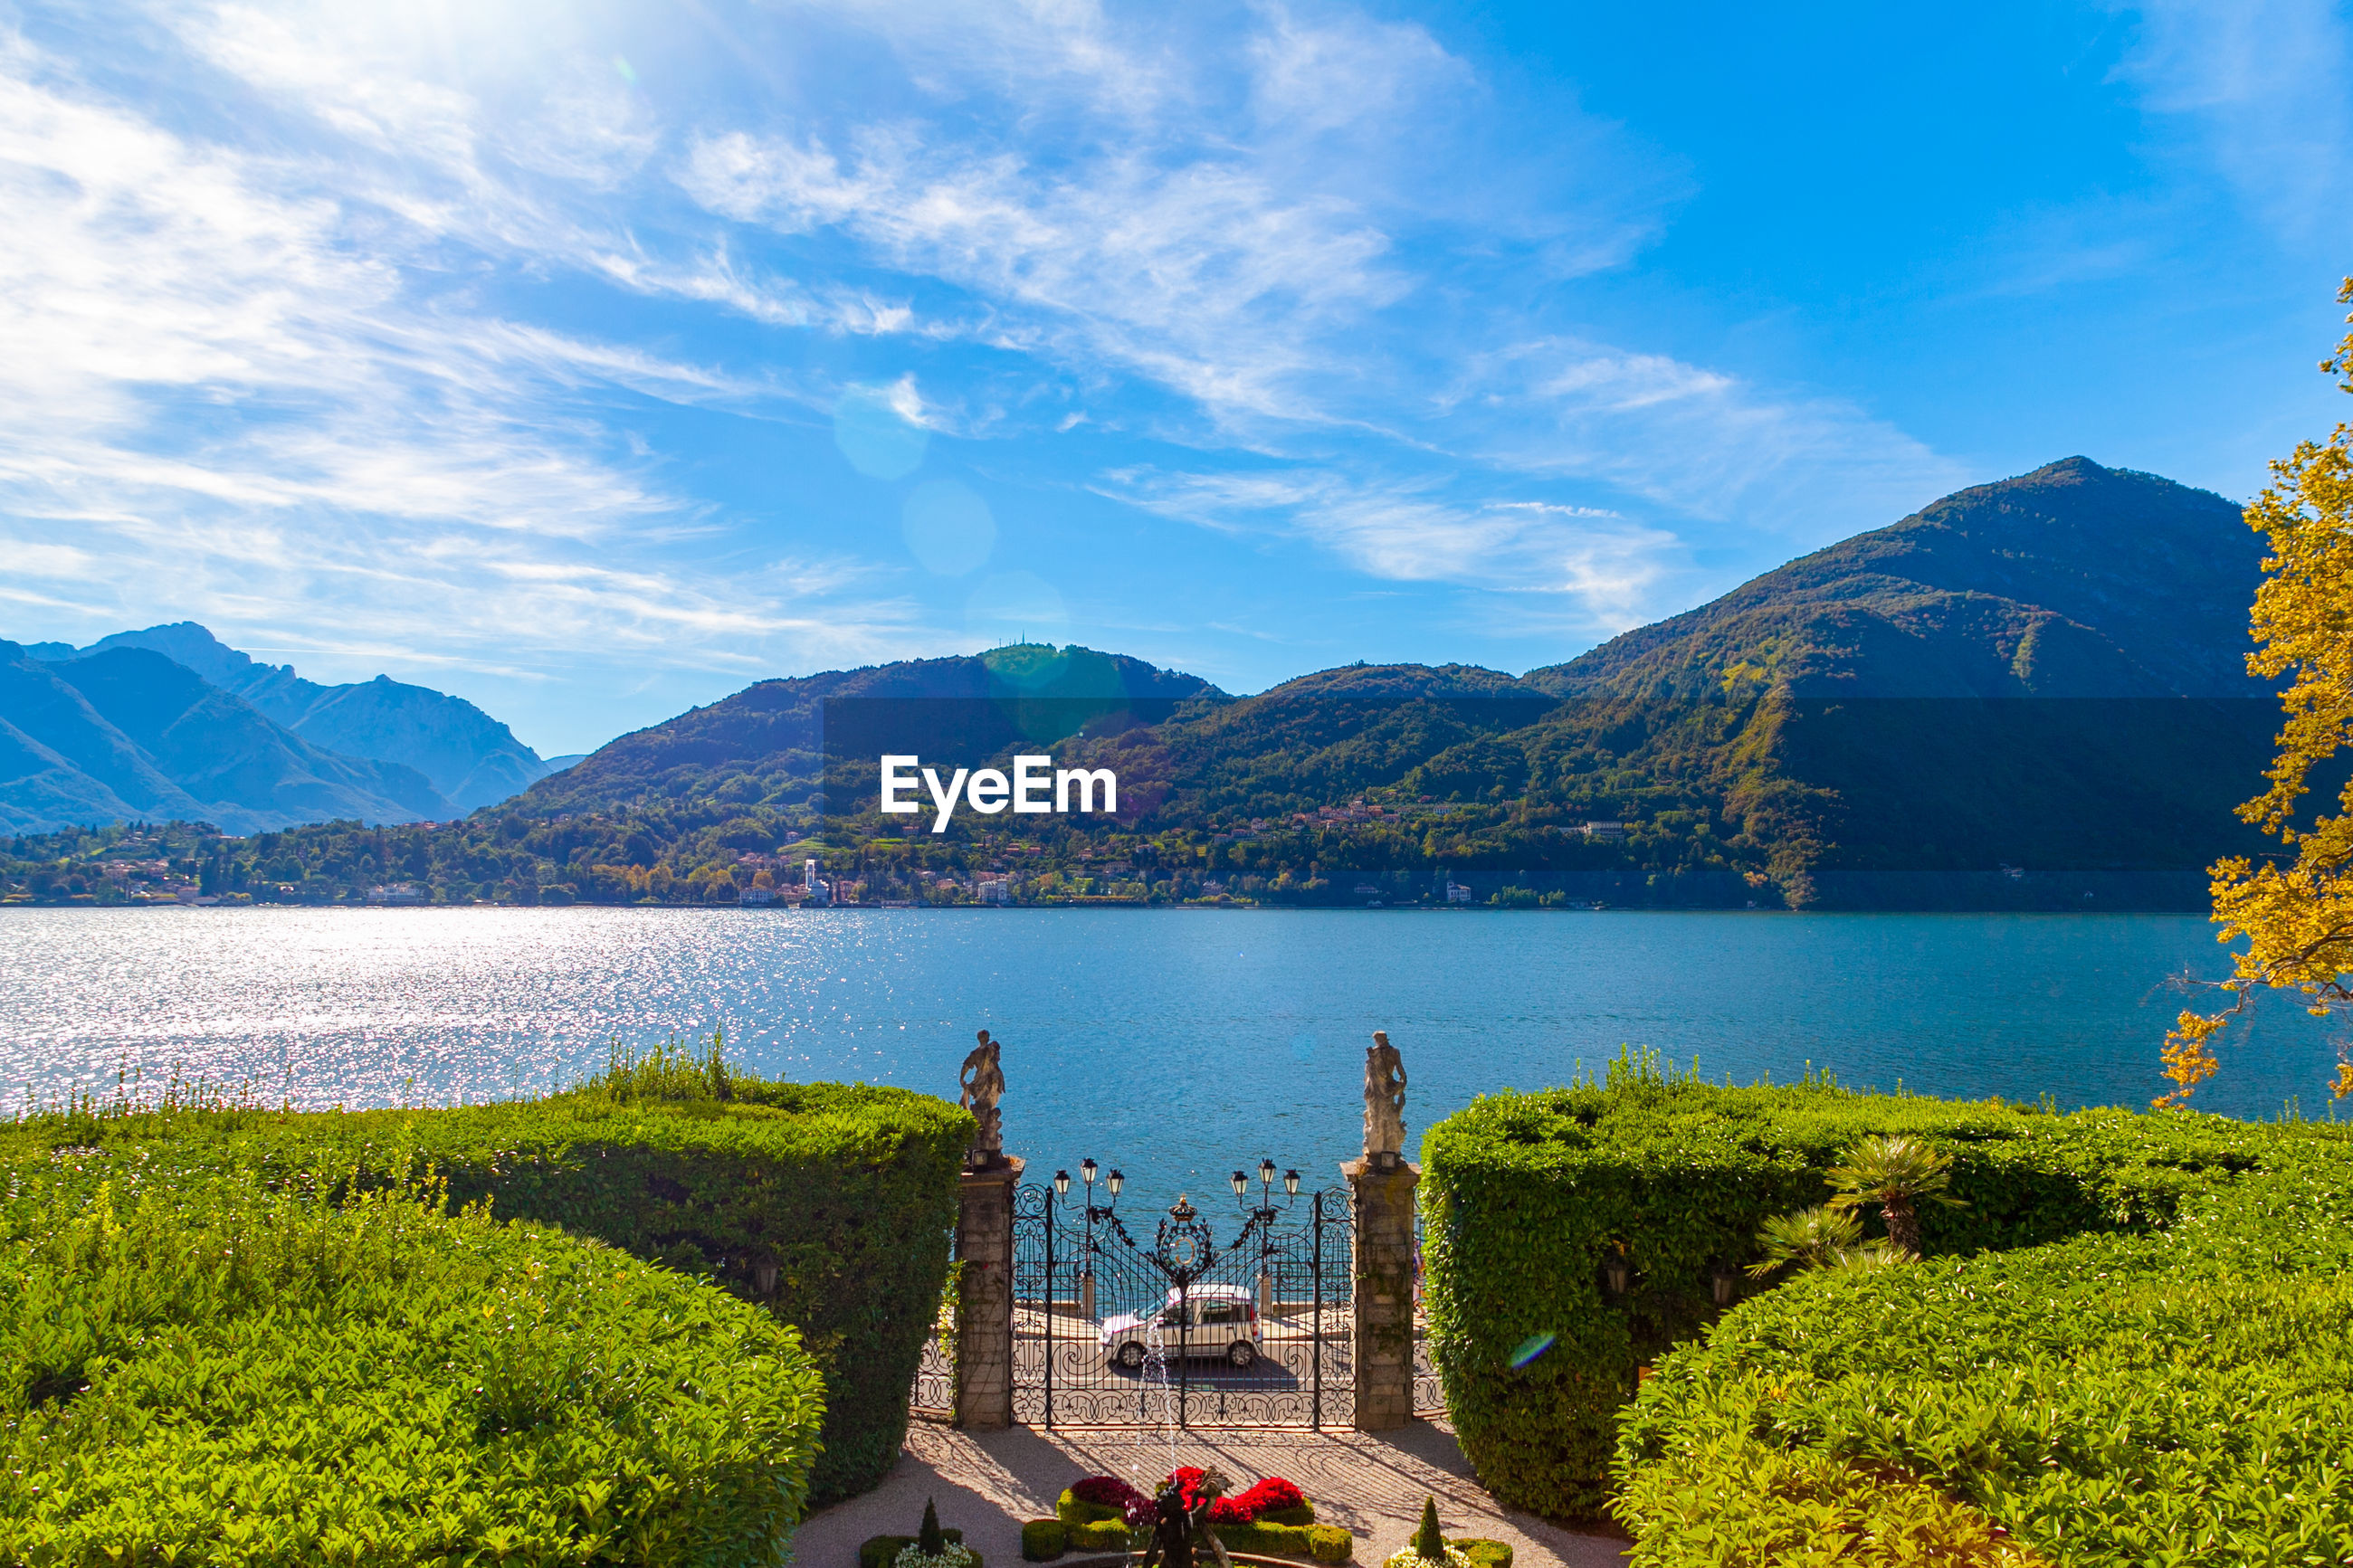 The fountain in the garden of villa carlotta, lombardy, italy, on lake como, mountains on background